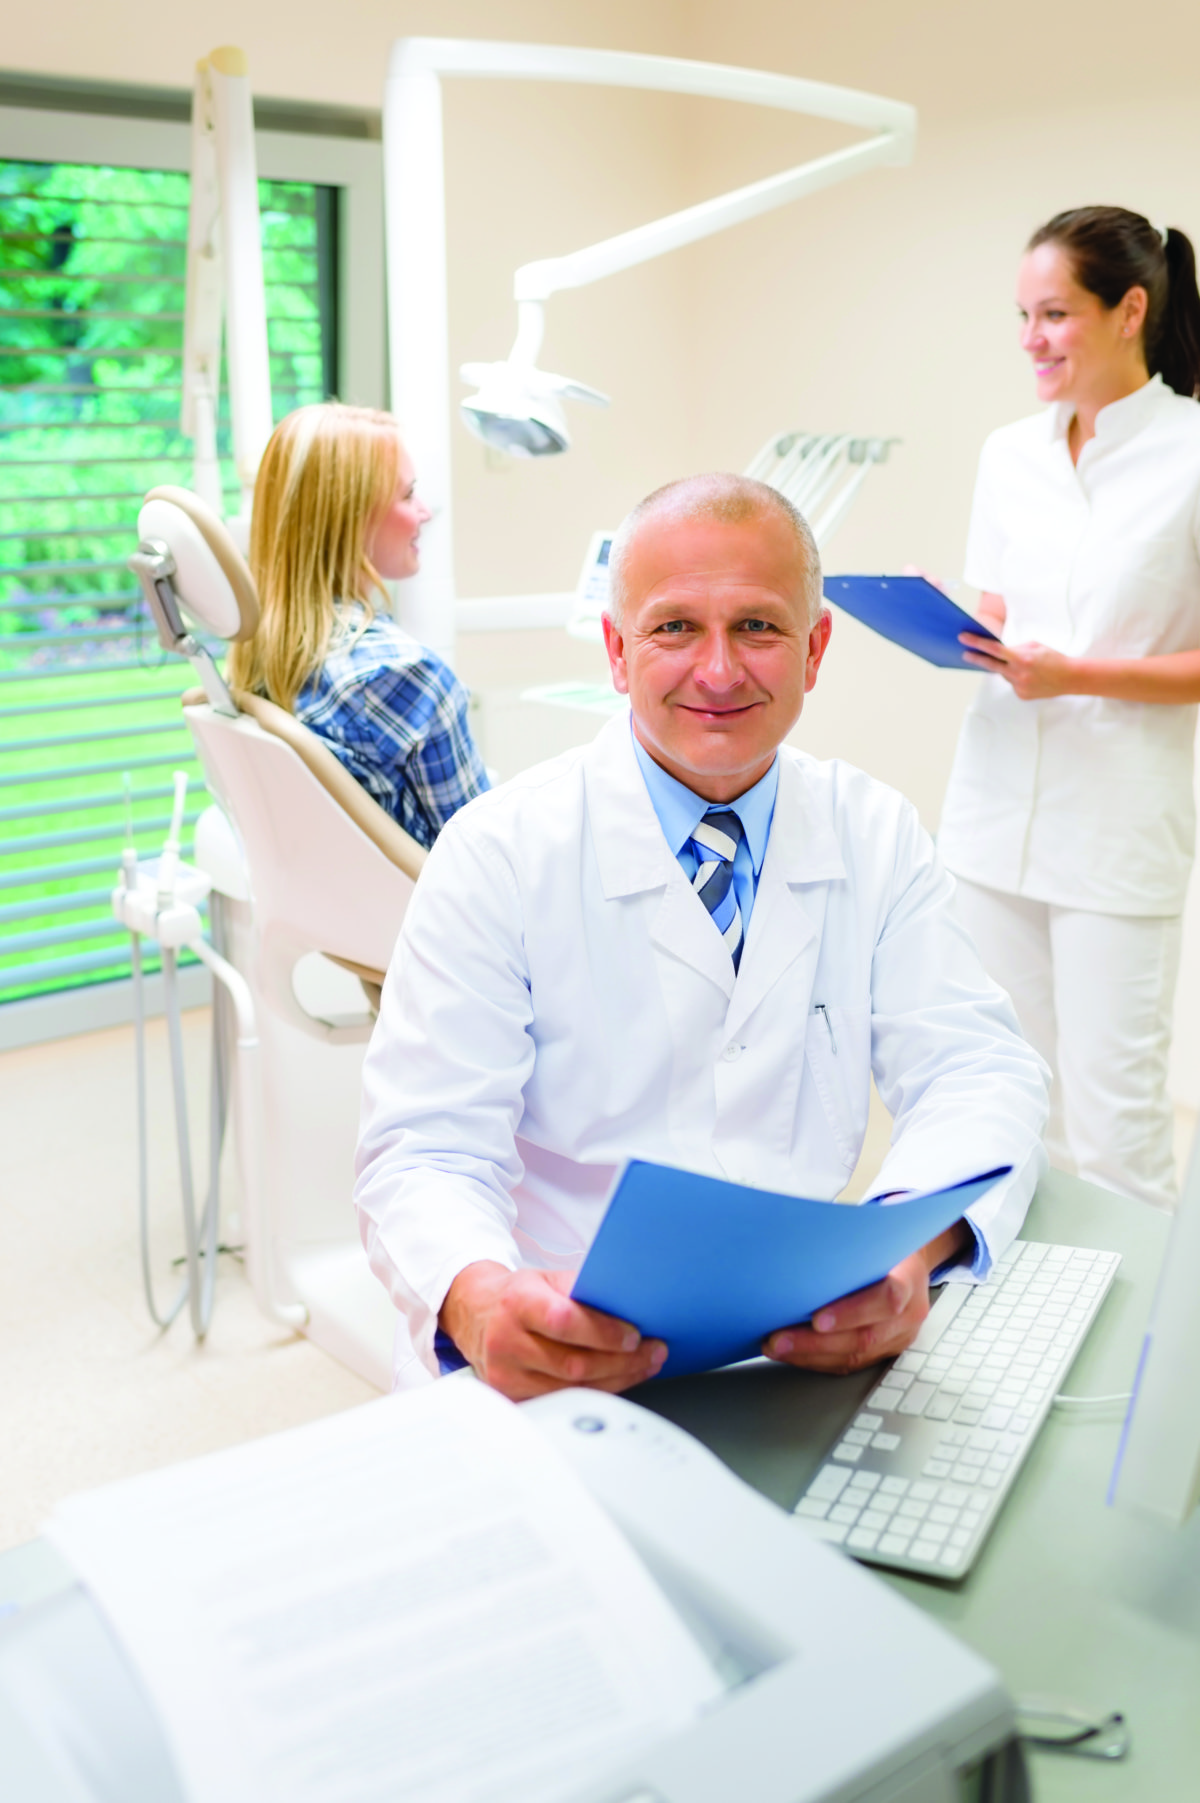 Mature dentist surgeon at dental clinic patient